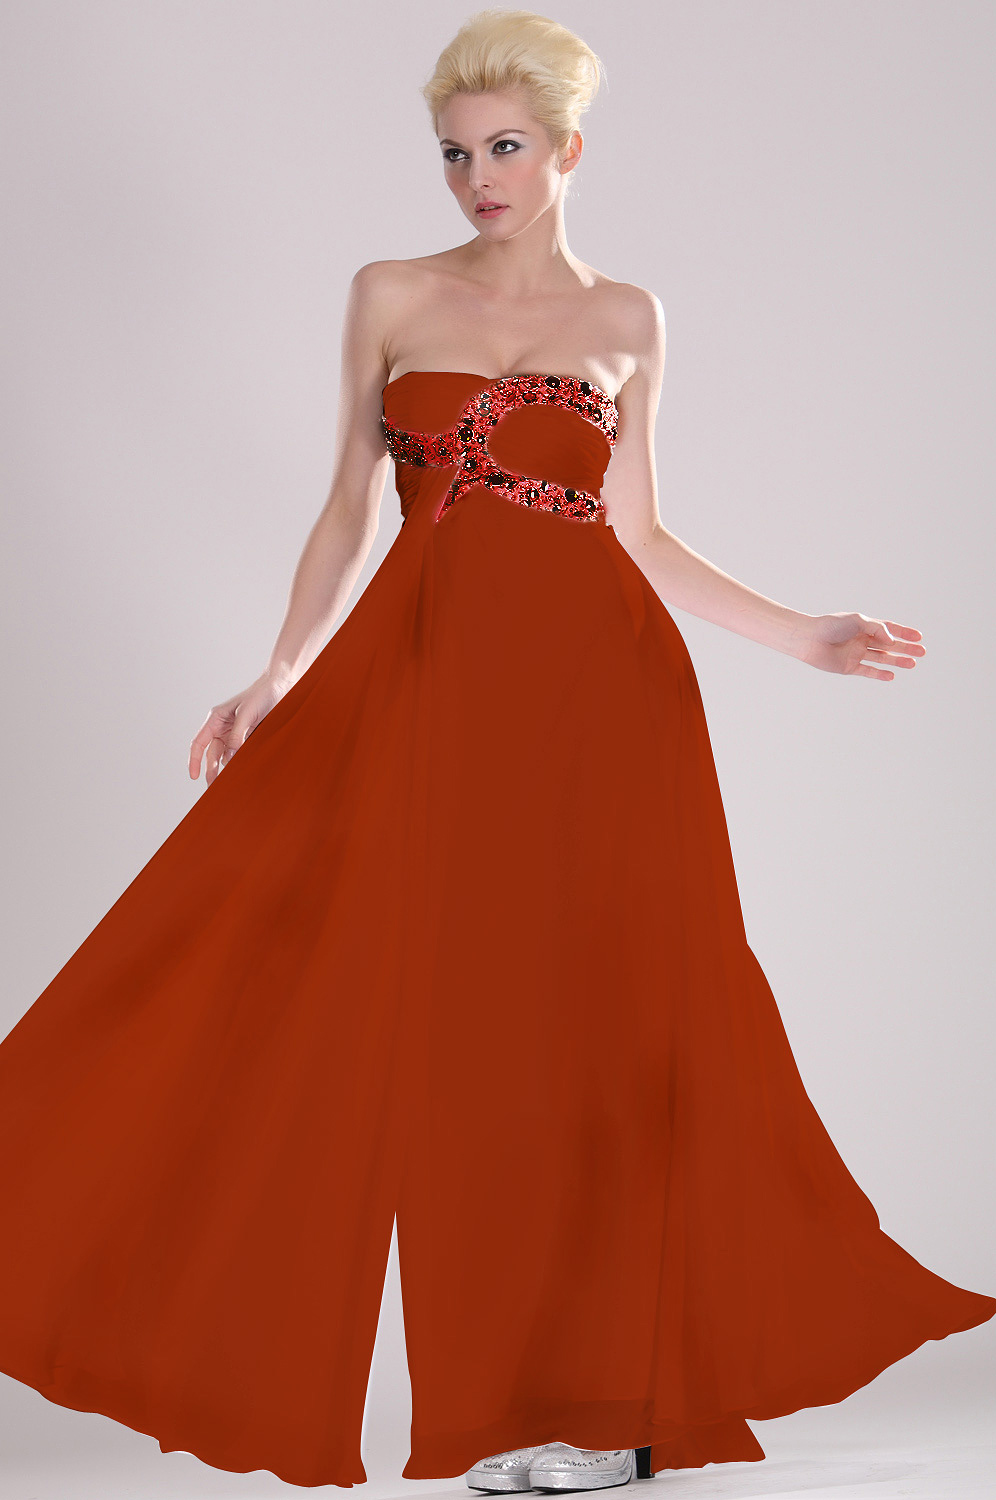 On sale eDressit Strapless Beaded Evening Dress (00104907a)